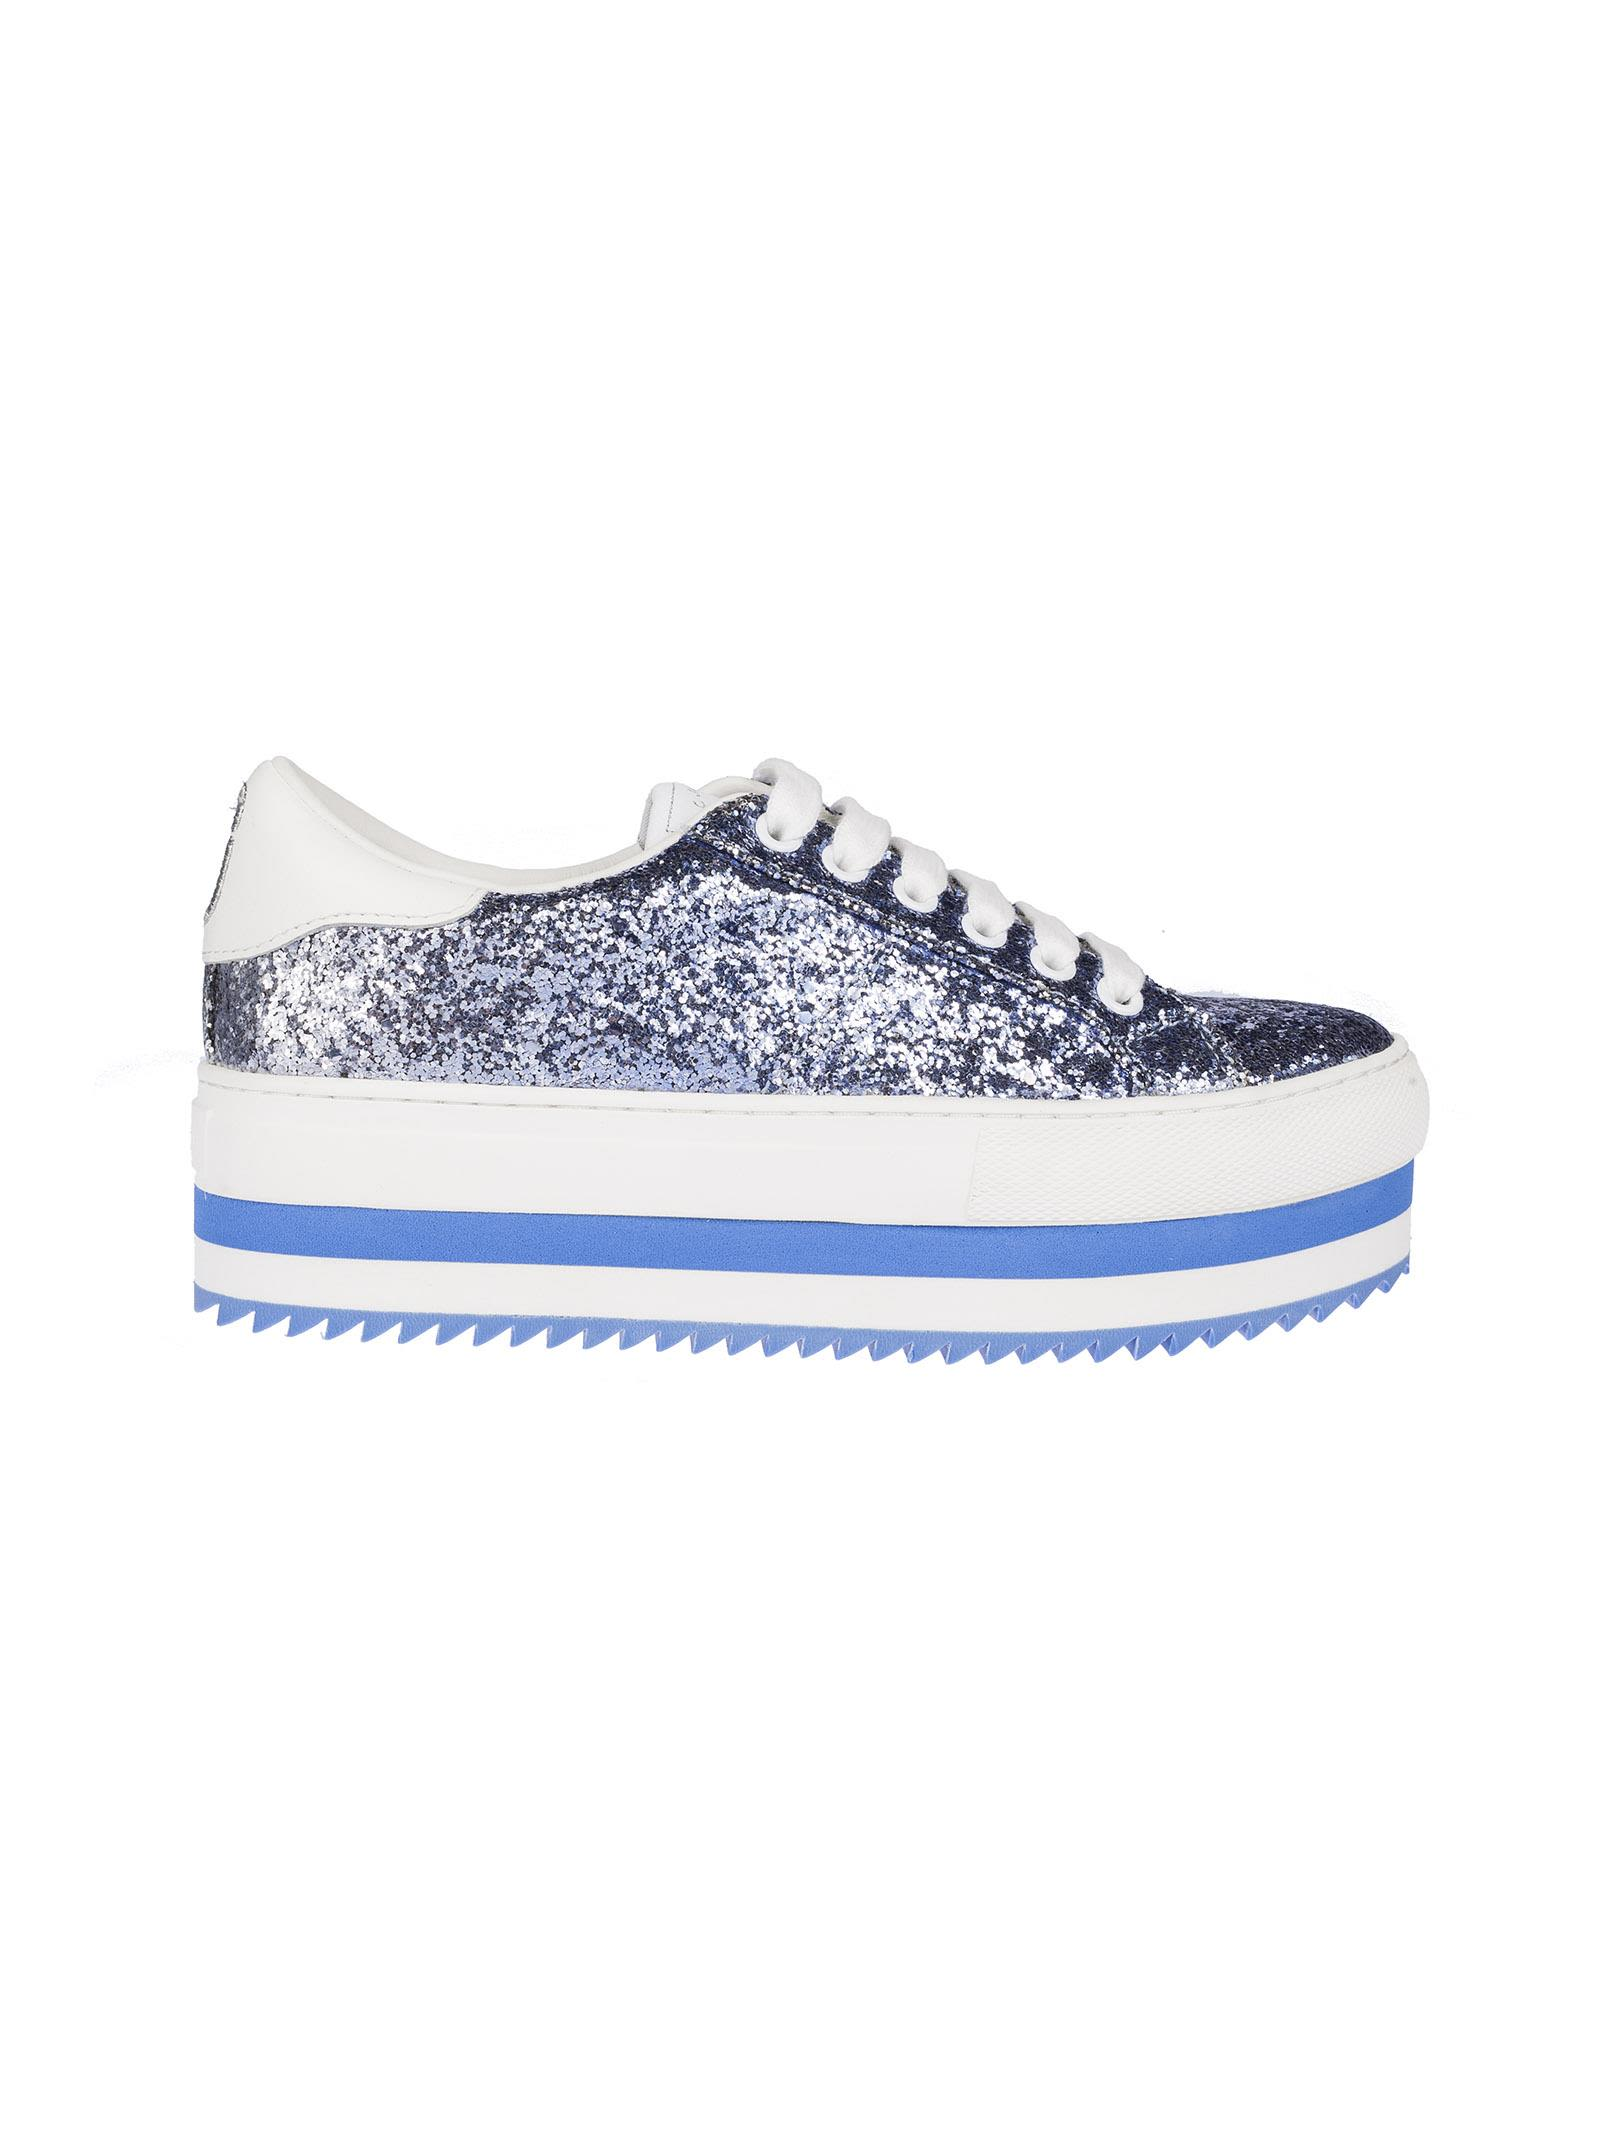 Marc Jacobs Glitter Platform Sneakers